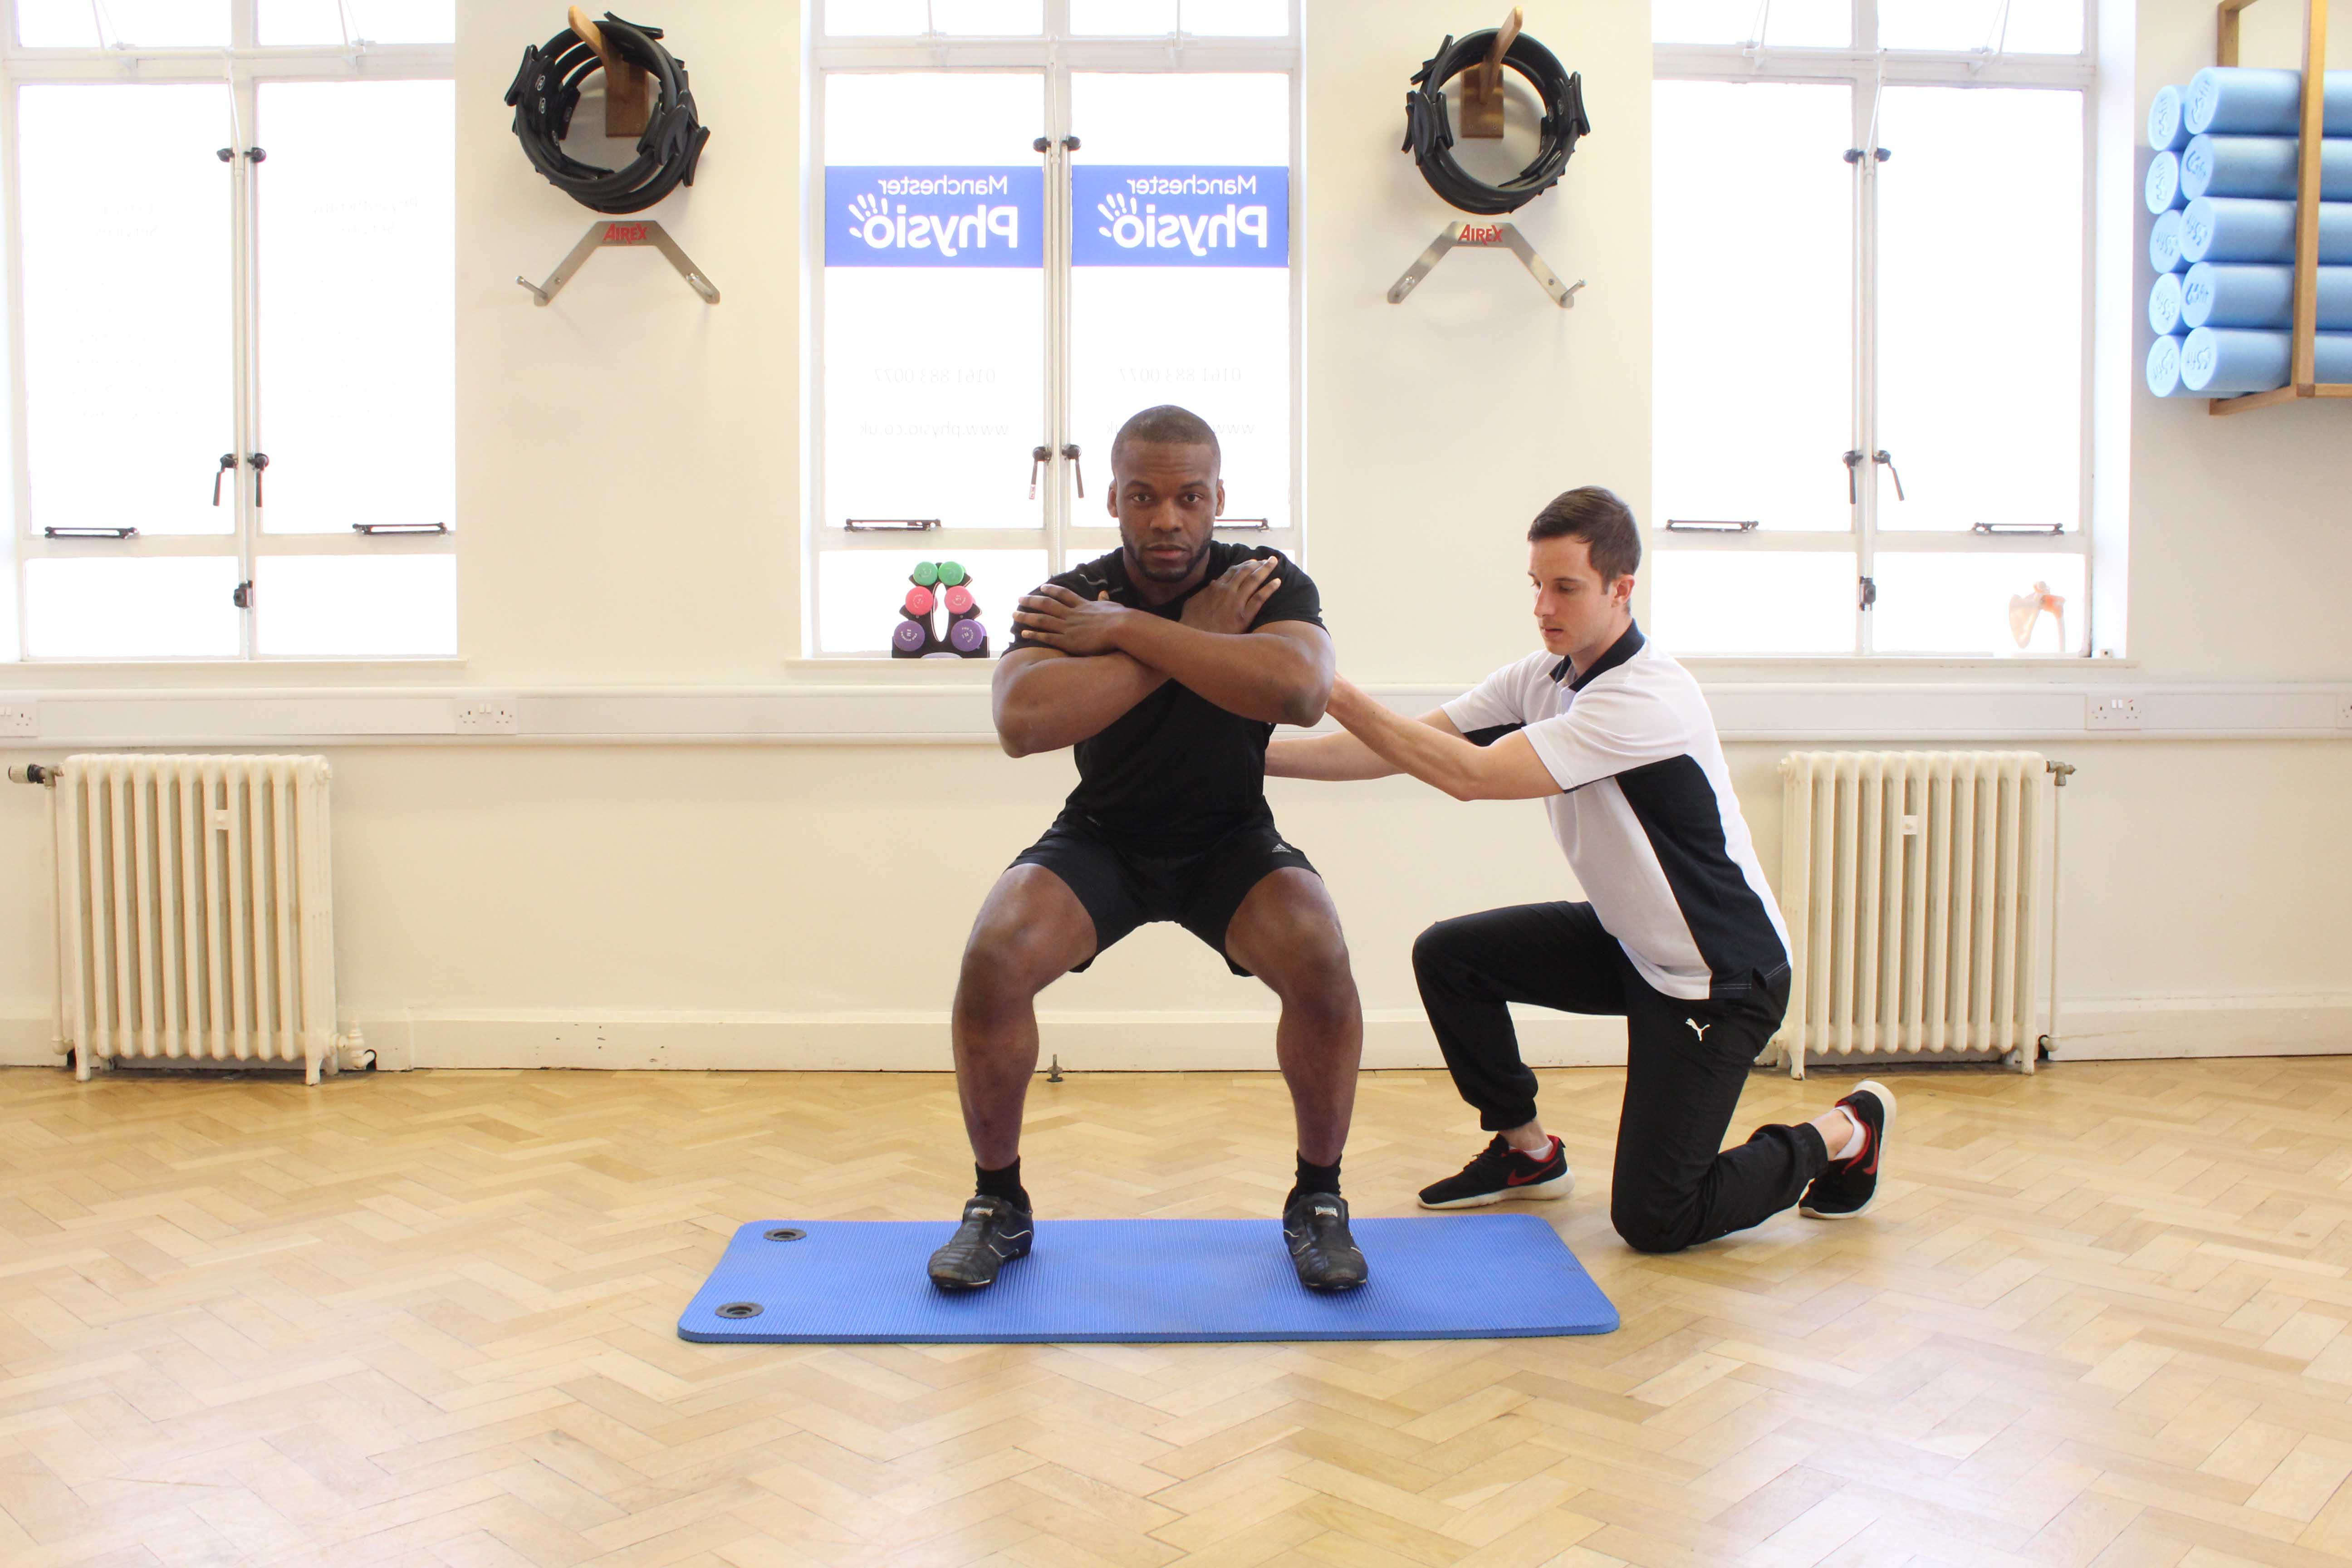 Progressive quadricep strengthening exercises supervised by specialist MSK therapist